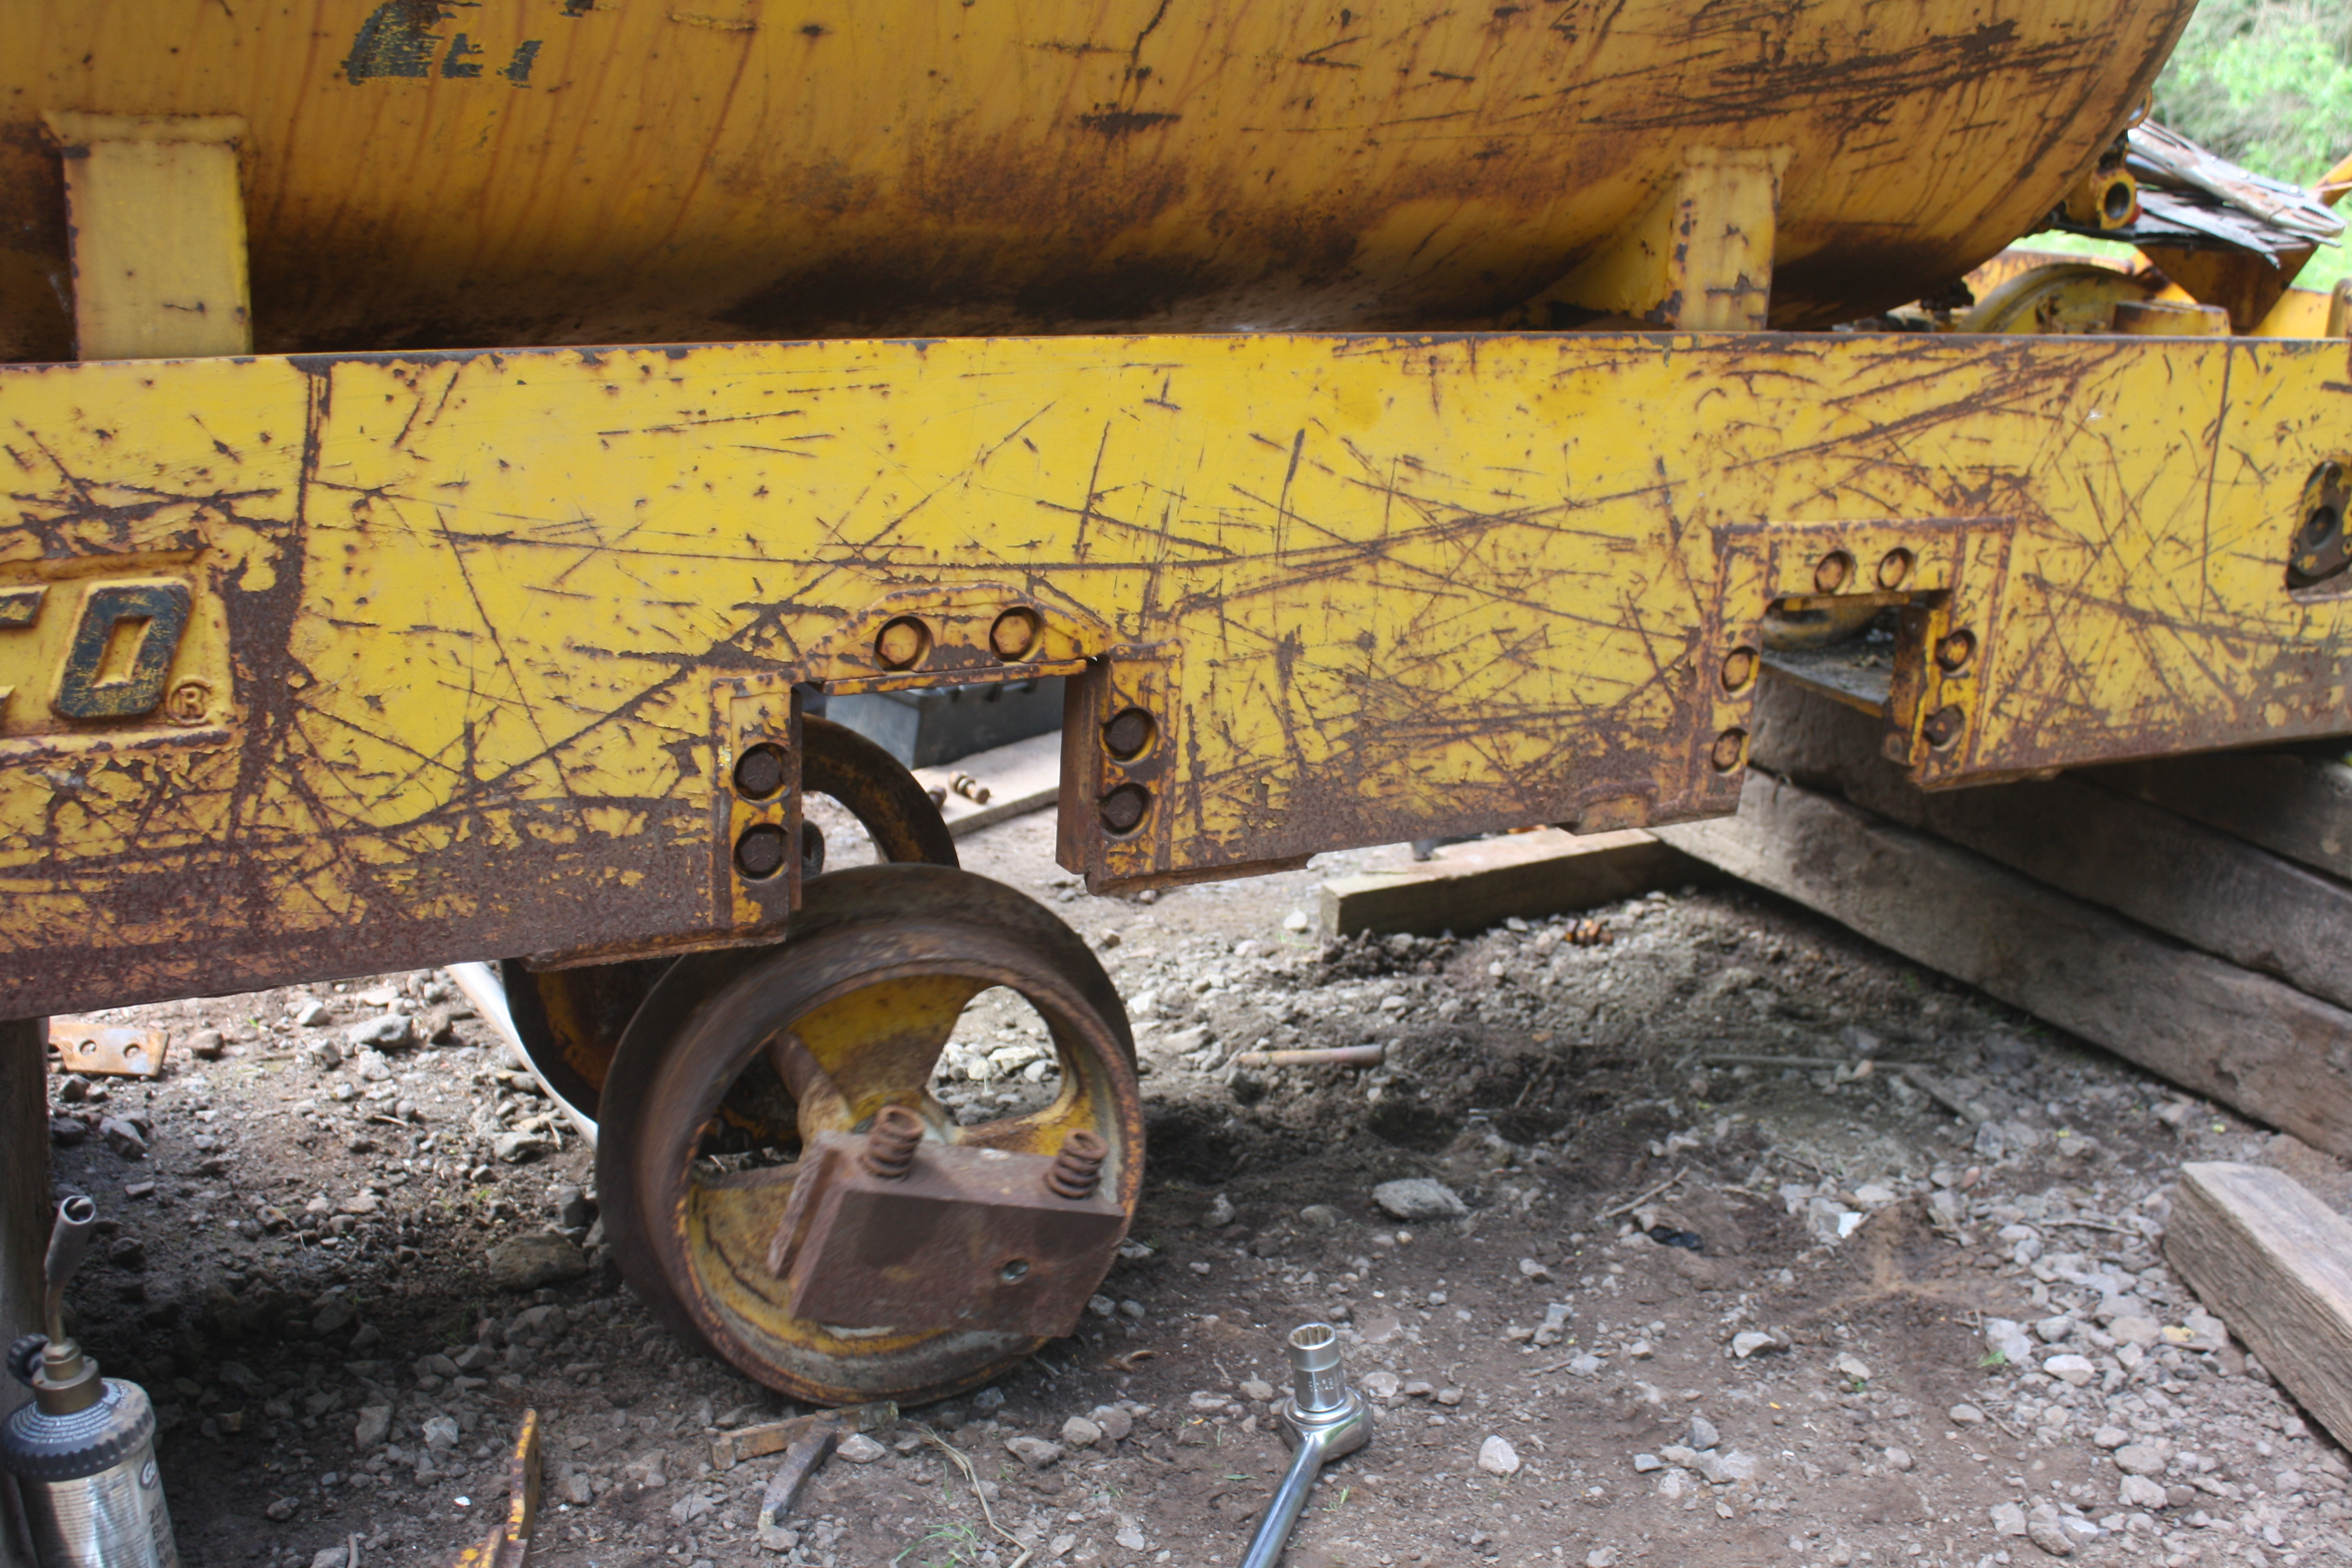 Second axle removed